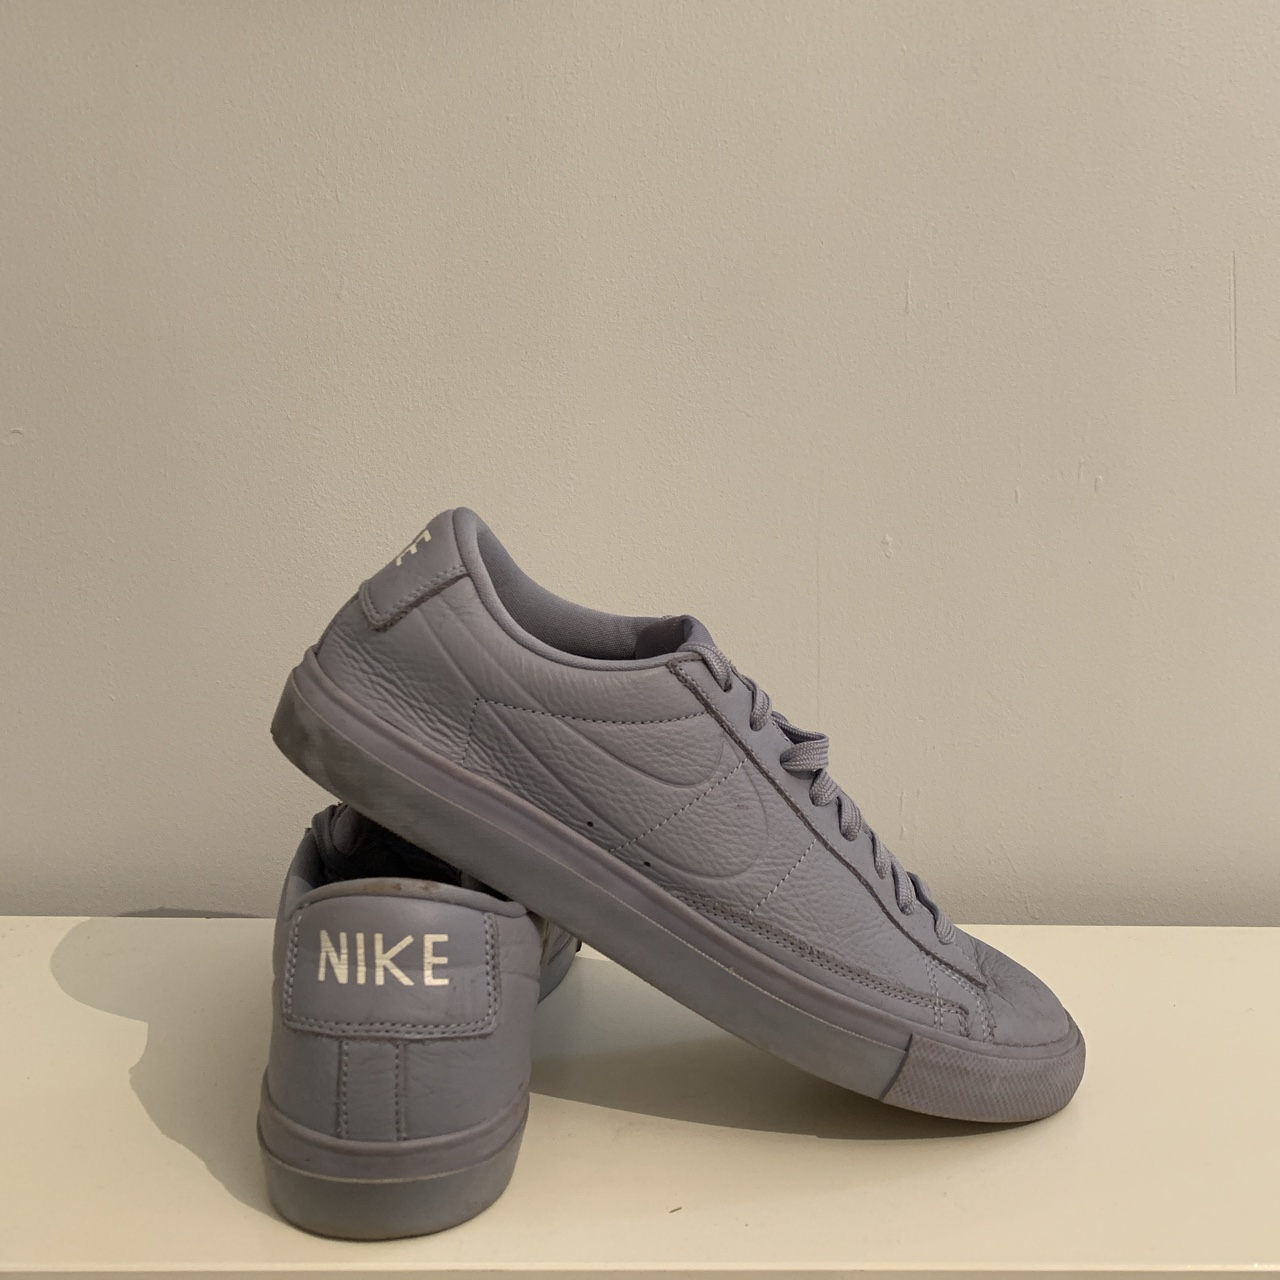 size 7 nike trainers